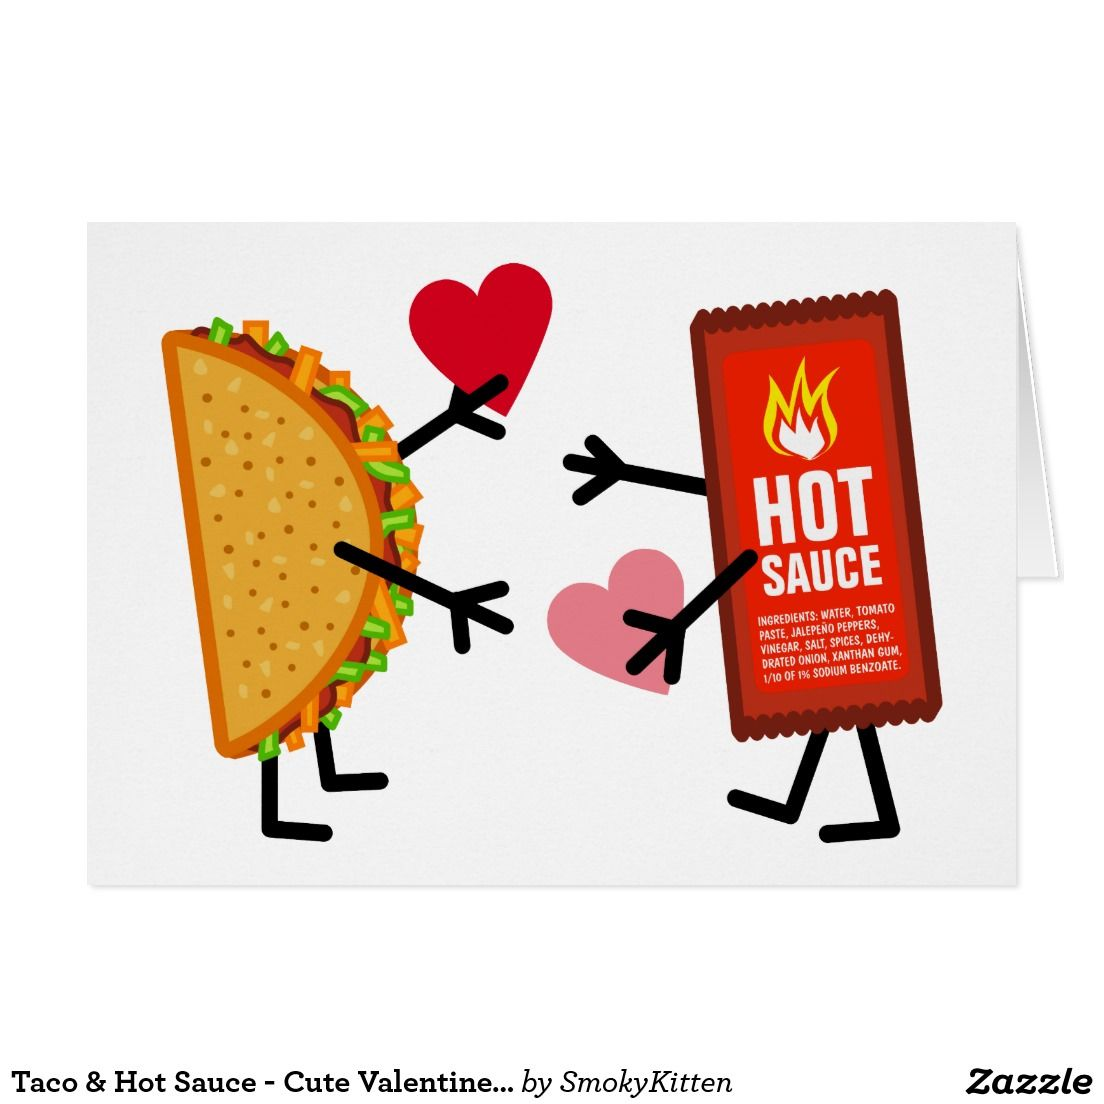 Taco Hot Sauce Cute Valentine S Day Hearts Holiday Card Zazzle Com Valentines Day Hearts Holiday Cards Cards